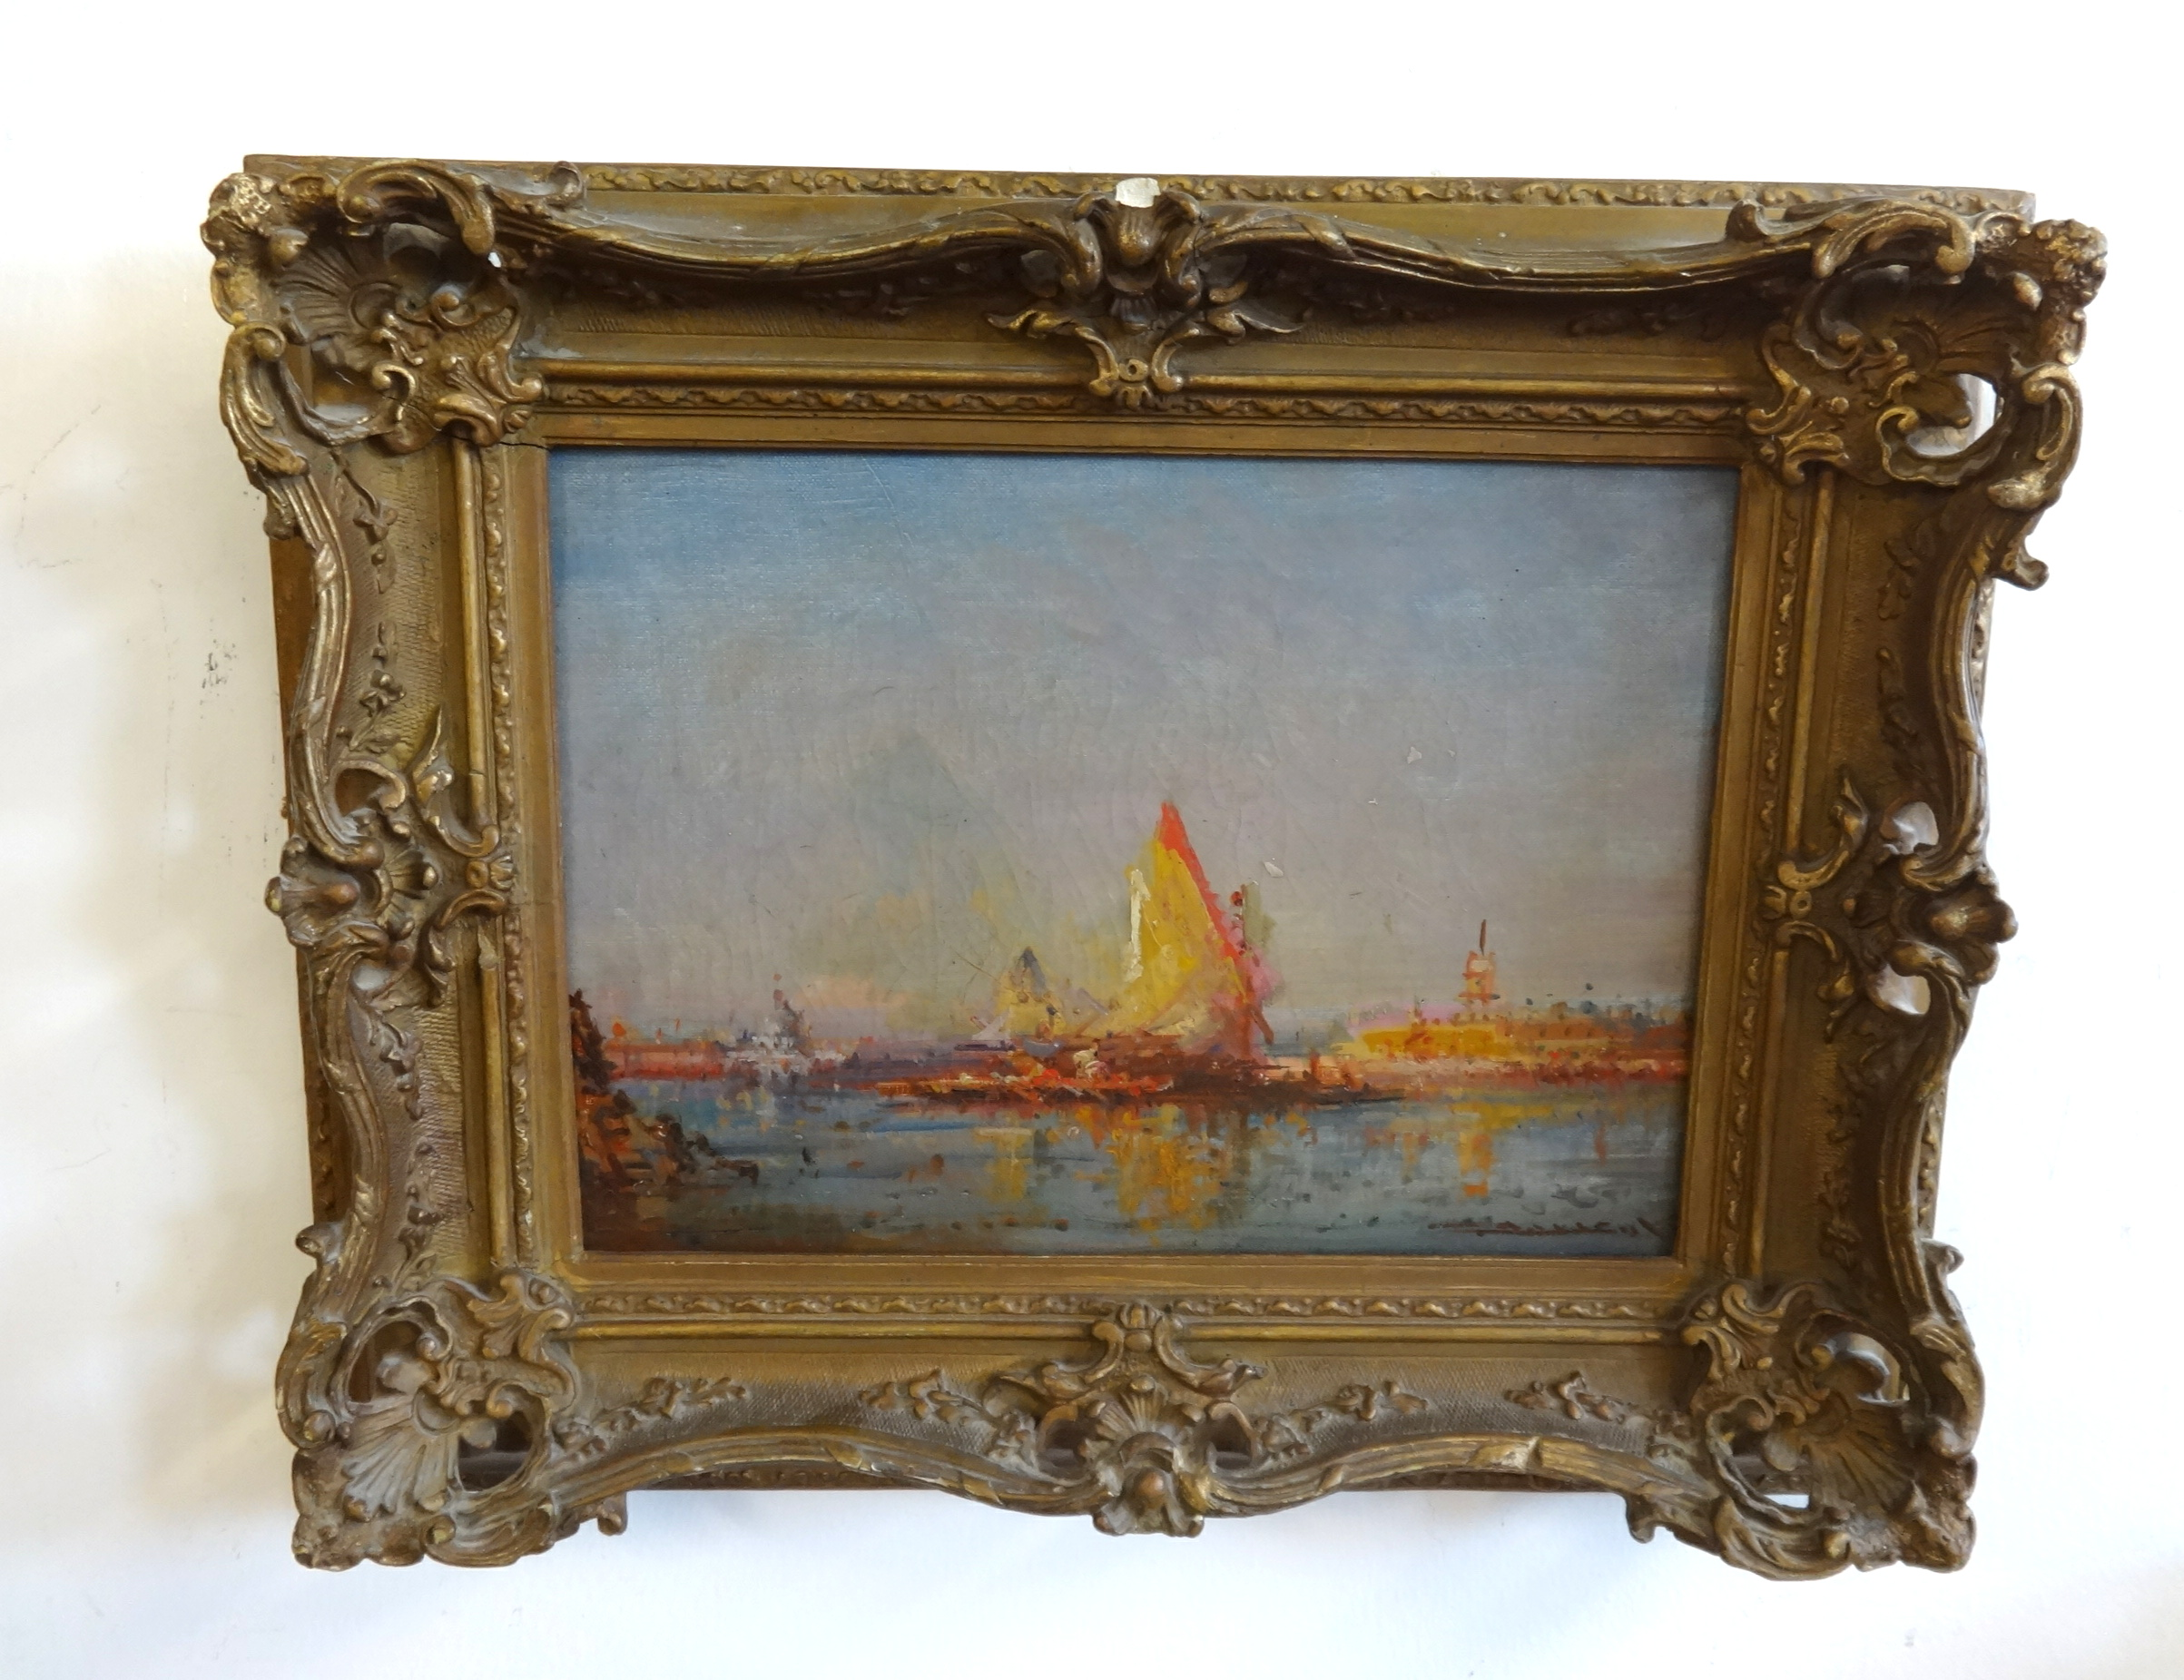 Lot 001 - A 19th century oil on canvas 'Venice', indistinctly signed, in possibly original gilt frame, 23cm